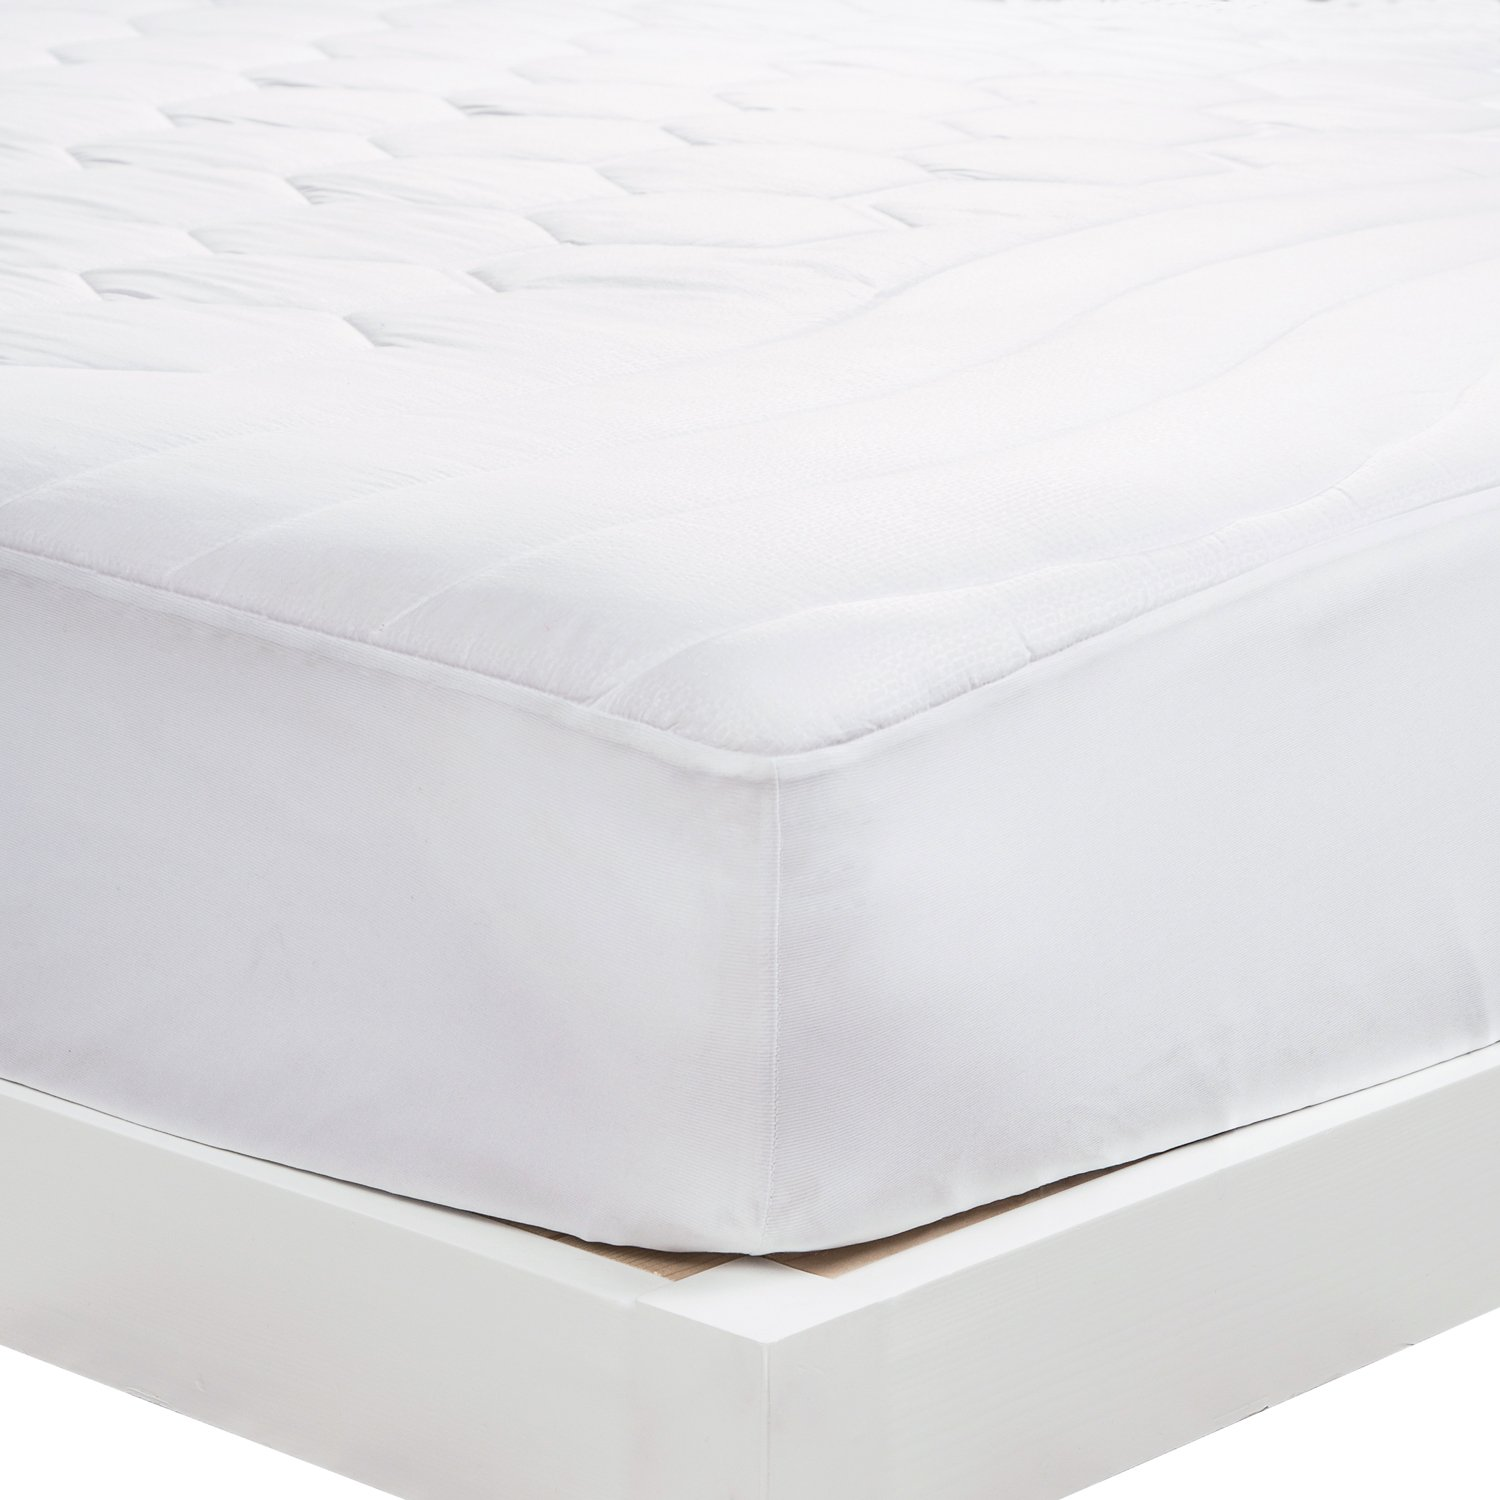 mattress pad twin xl twin extra long size hypoallergenic antibacterial ebay. Black Bedroom Furniture Sets. Home Design Ideas